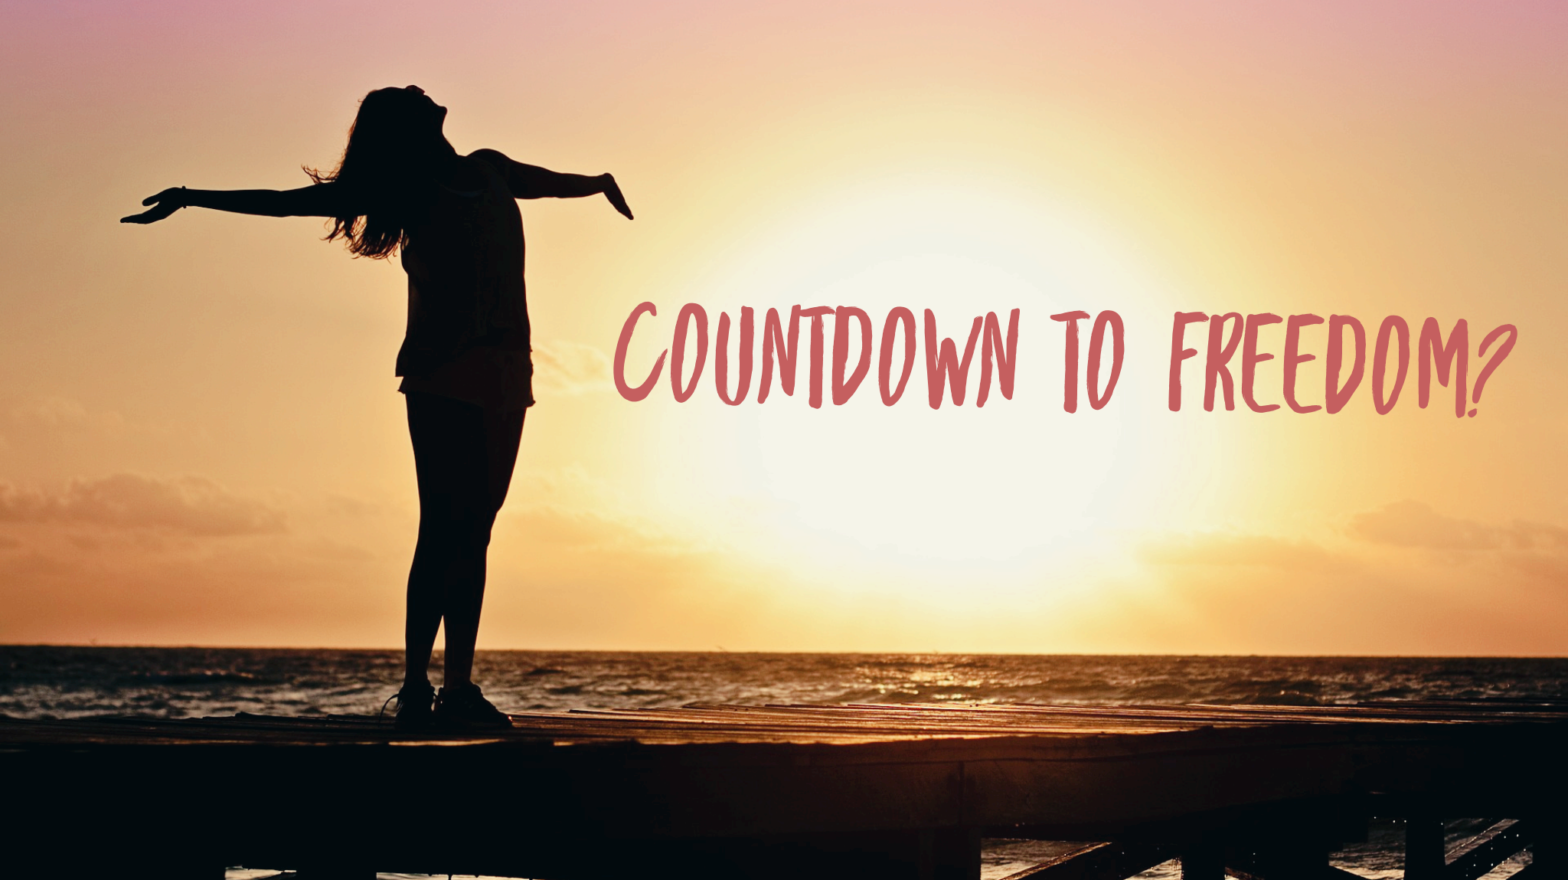 Countdown to Freedom?